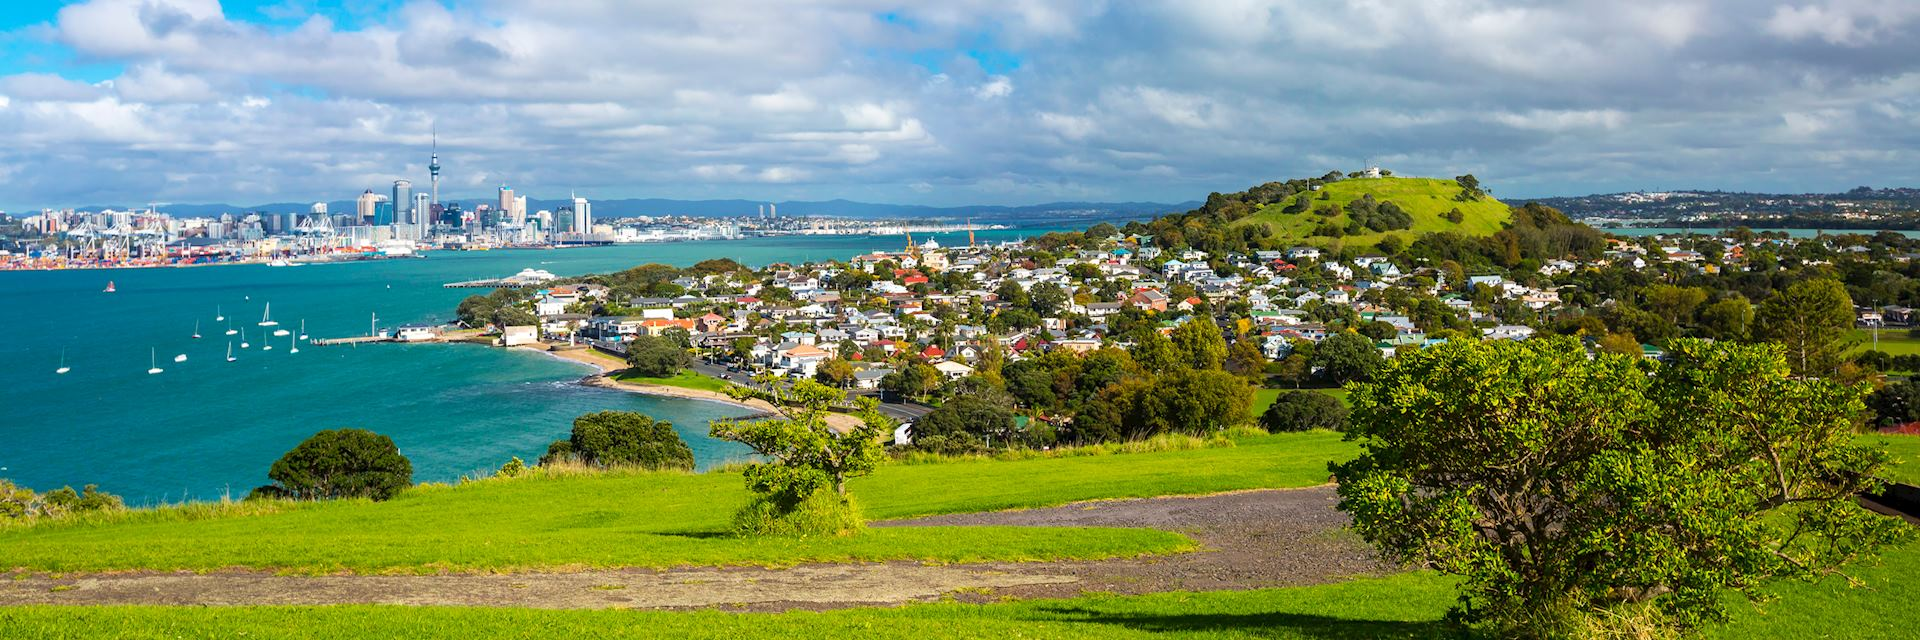 Devonport, New Zealand